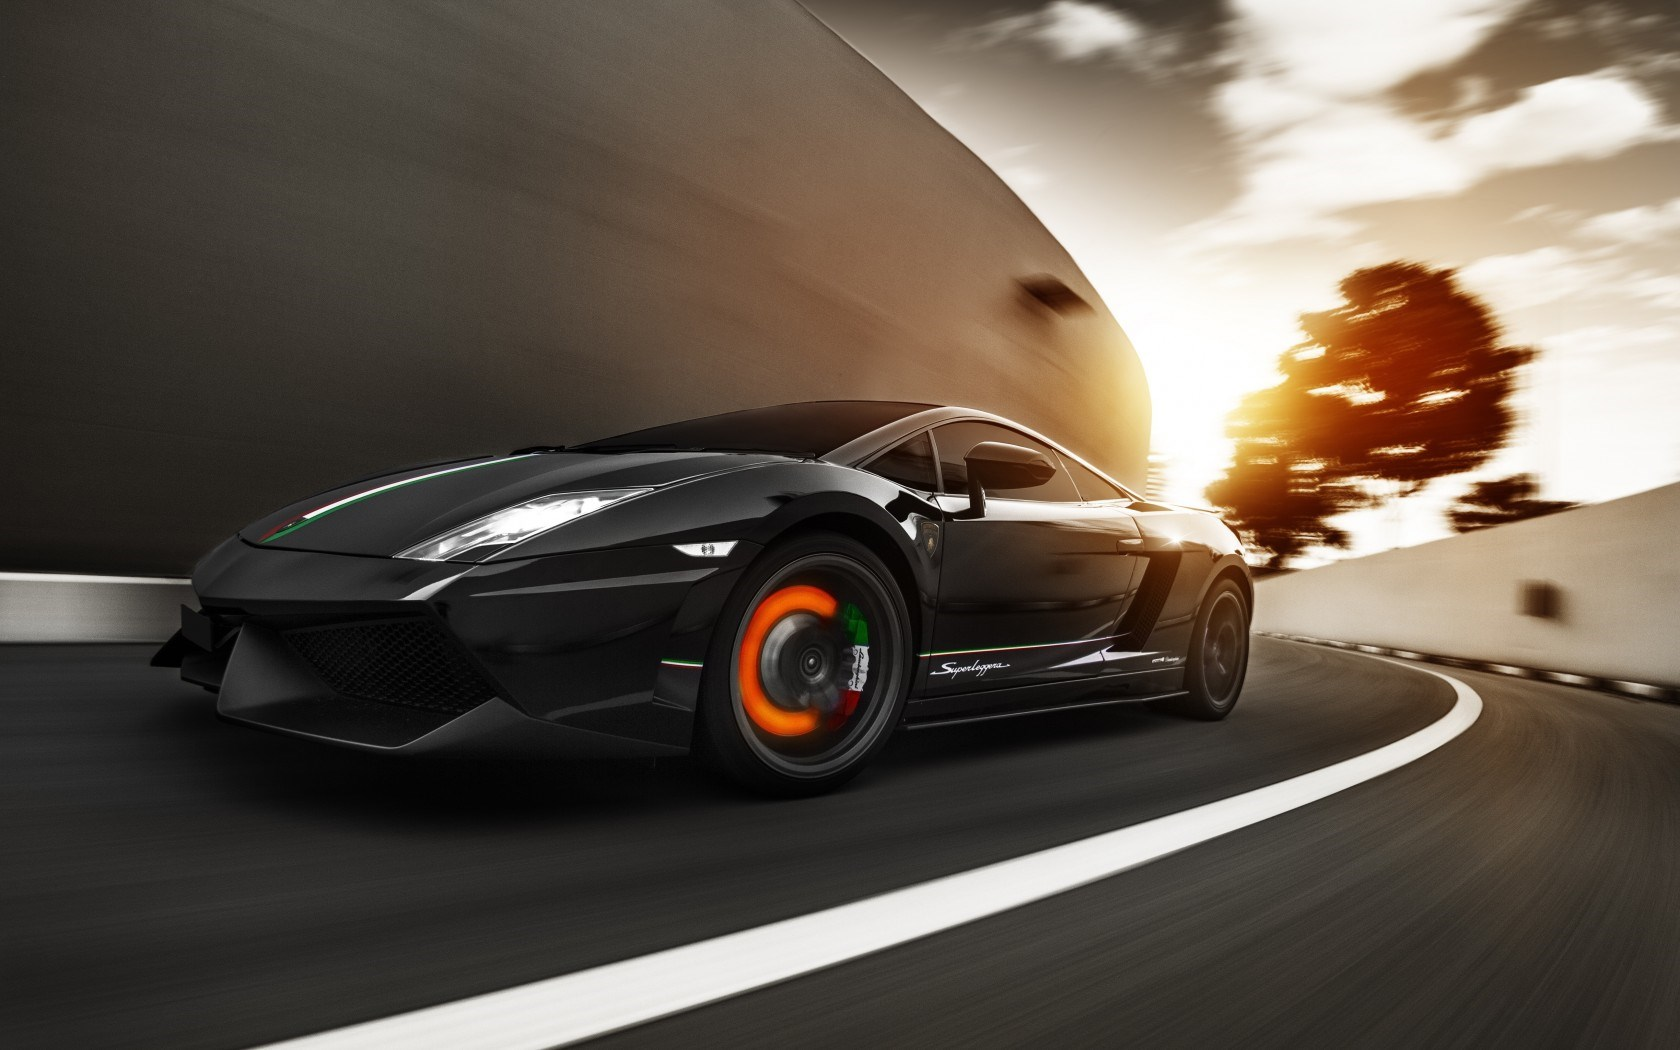 Lamborghini Gallardo LP560 4 Wallpapers ID445975